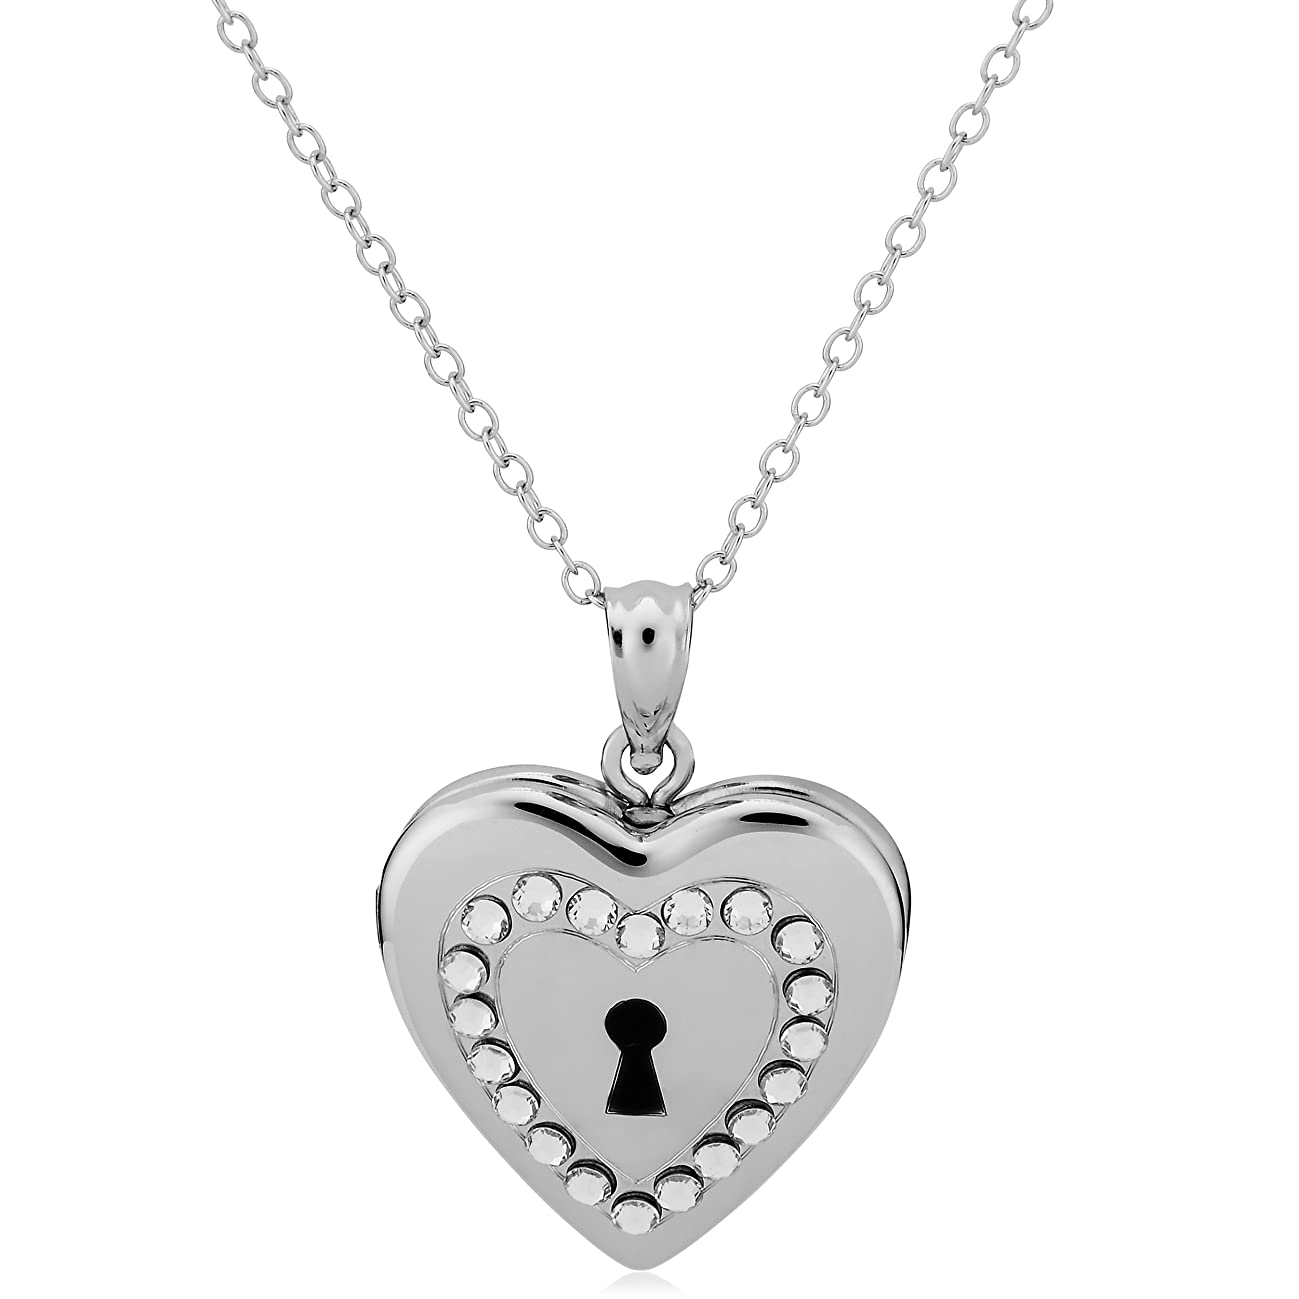 Sterling Silver With Crystals Keyhole Heart Locket Pendant Necklace (18 inch)